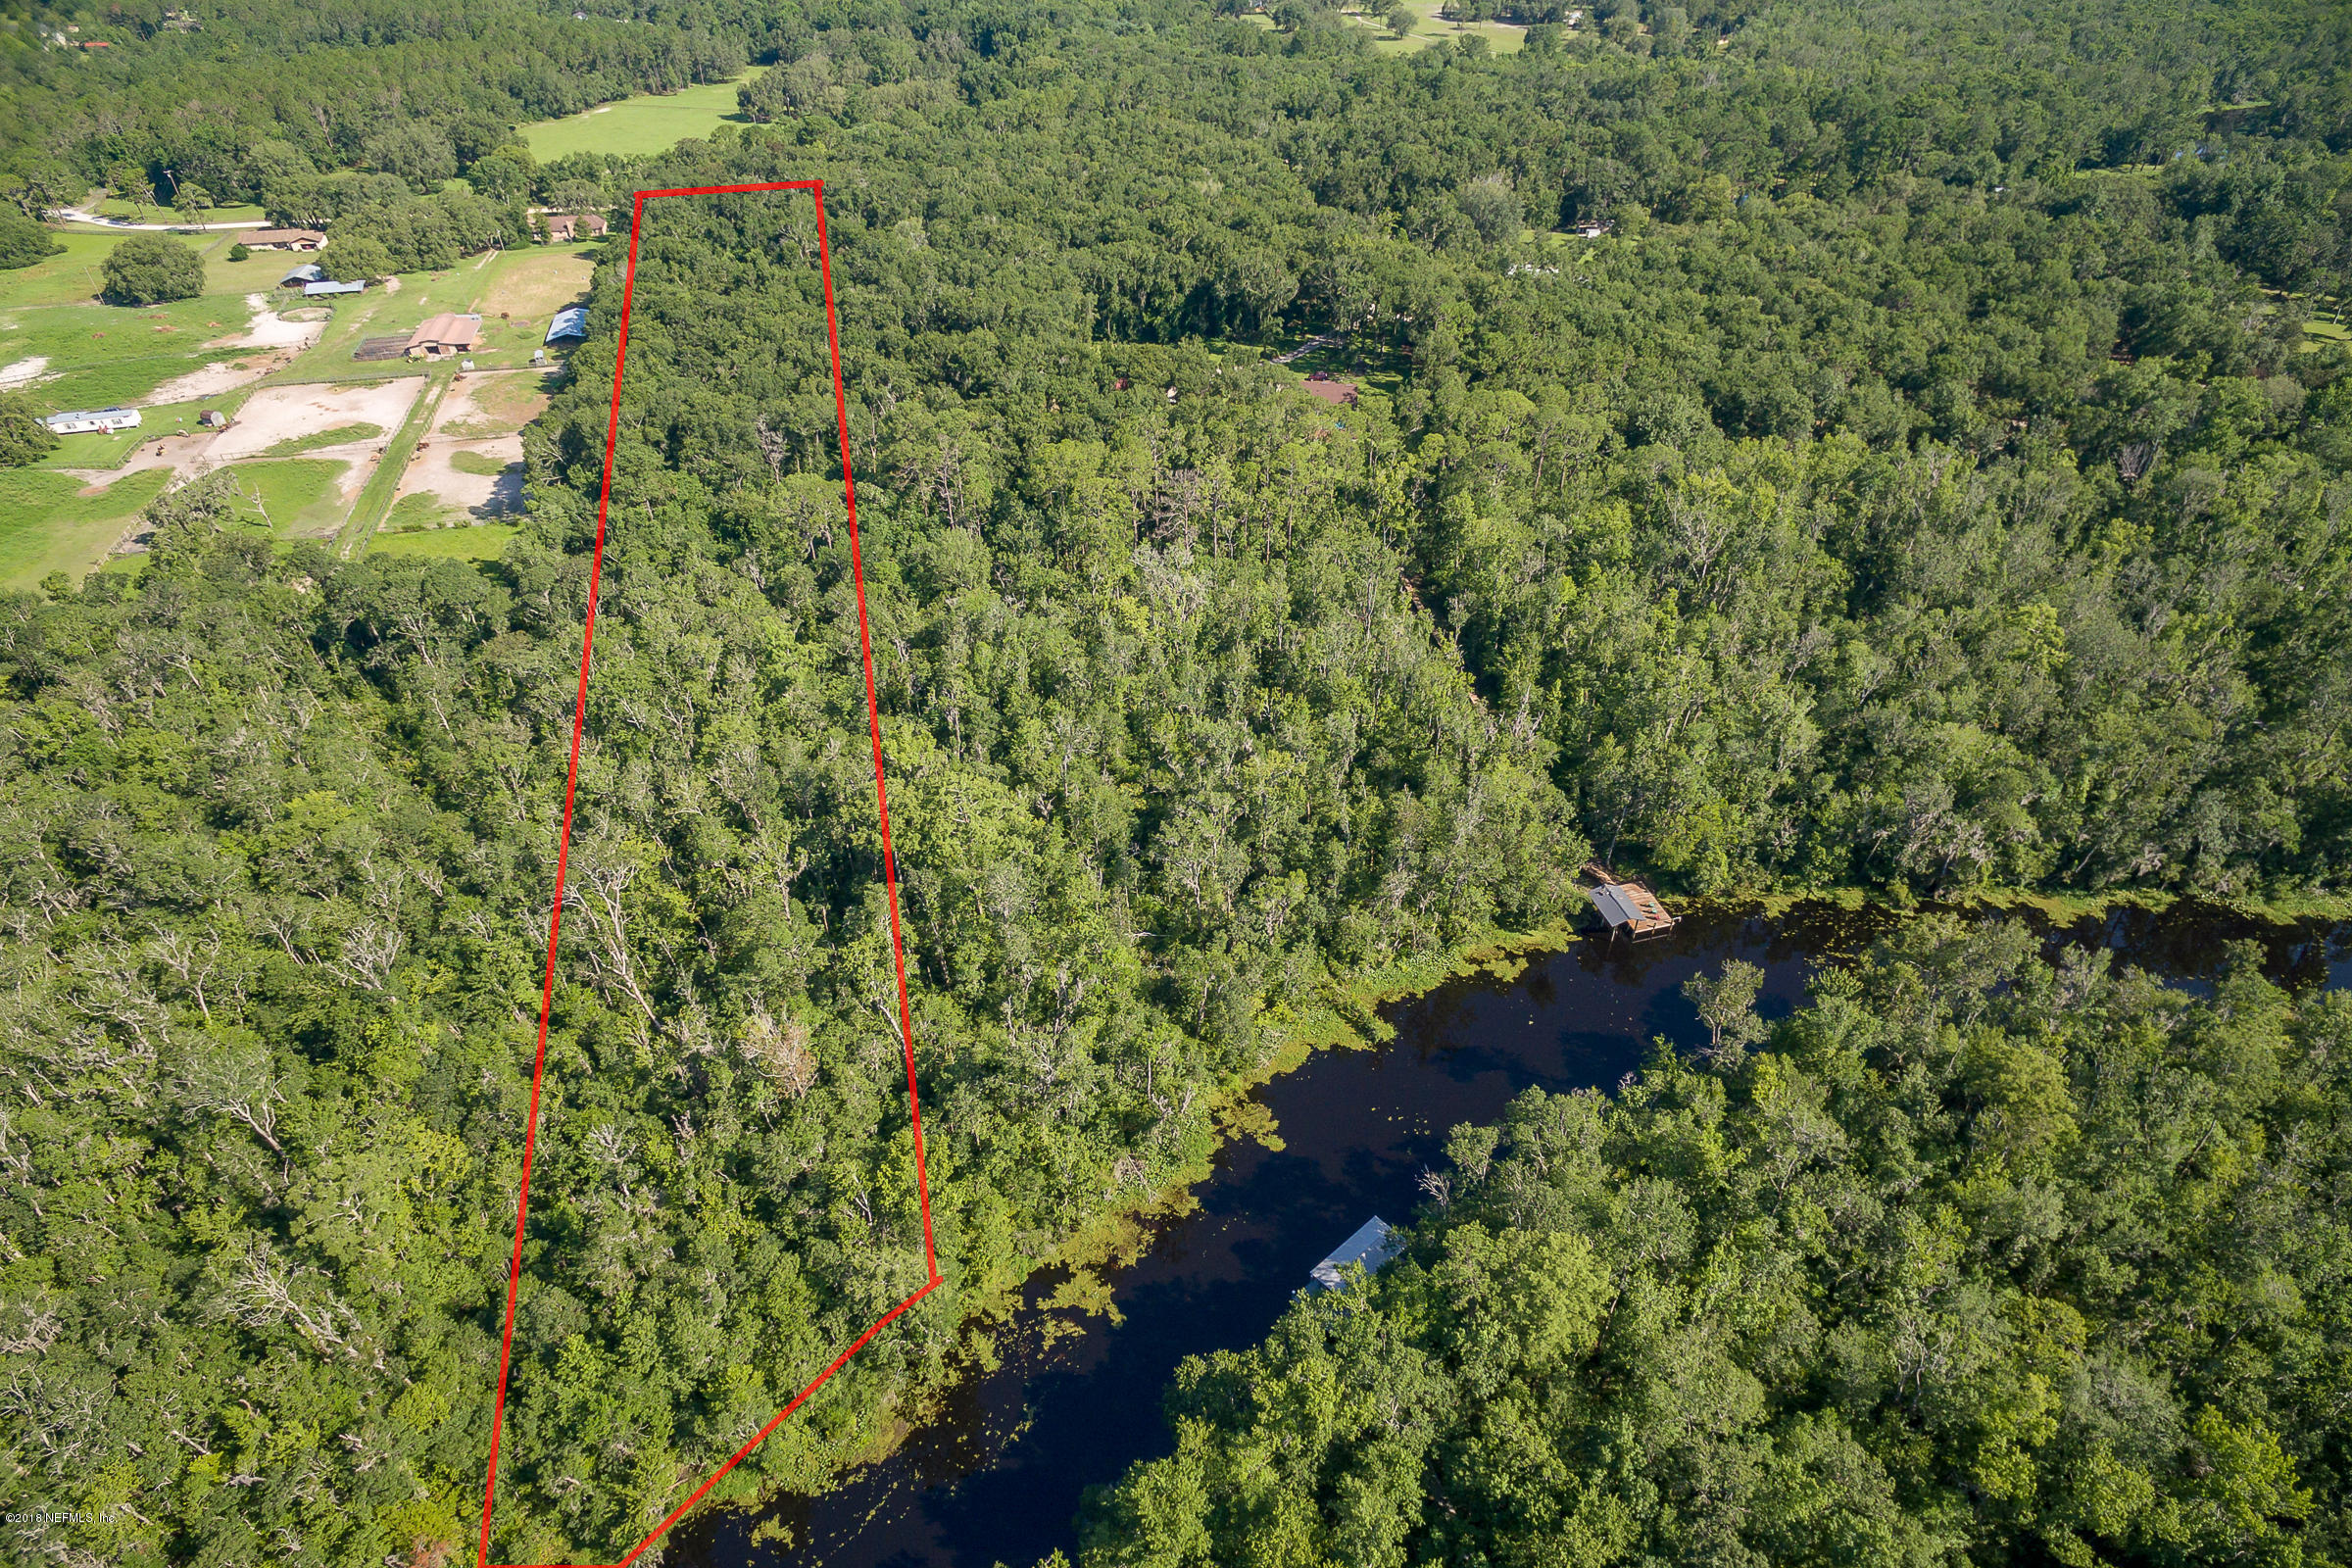 0 WATKINS, GREEN COVE SPRINGS, FLORIDA 32043, ,Vacant land,For sale,WATKINS,1073651